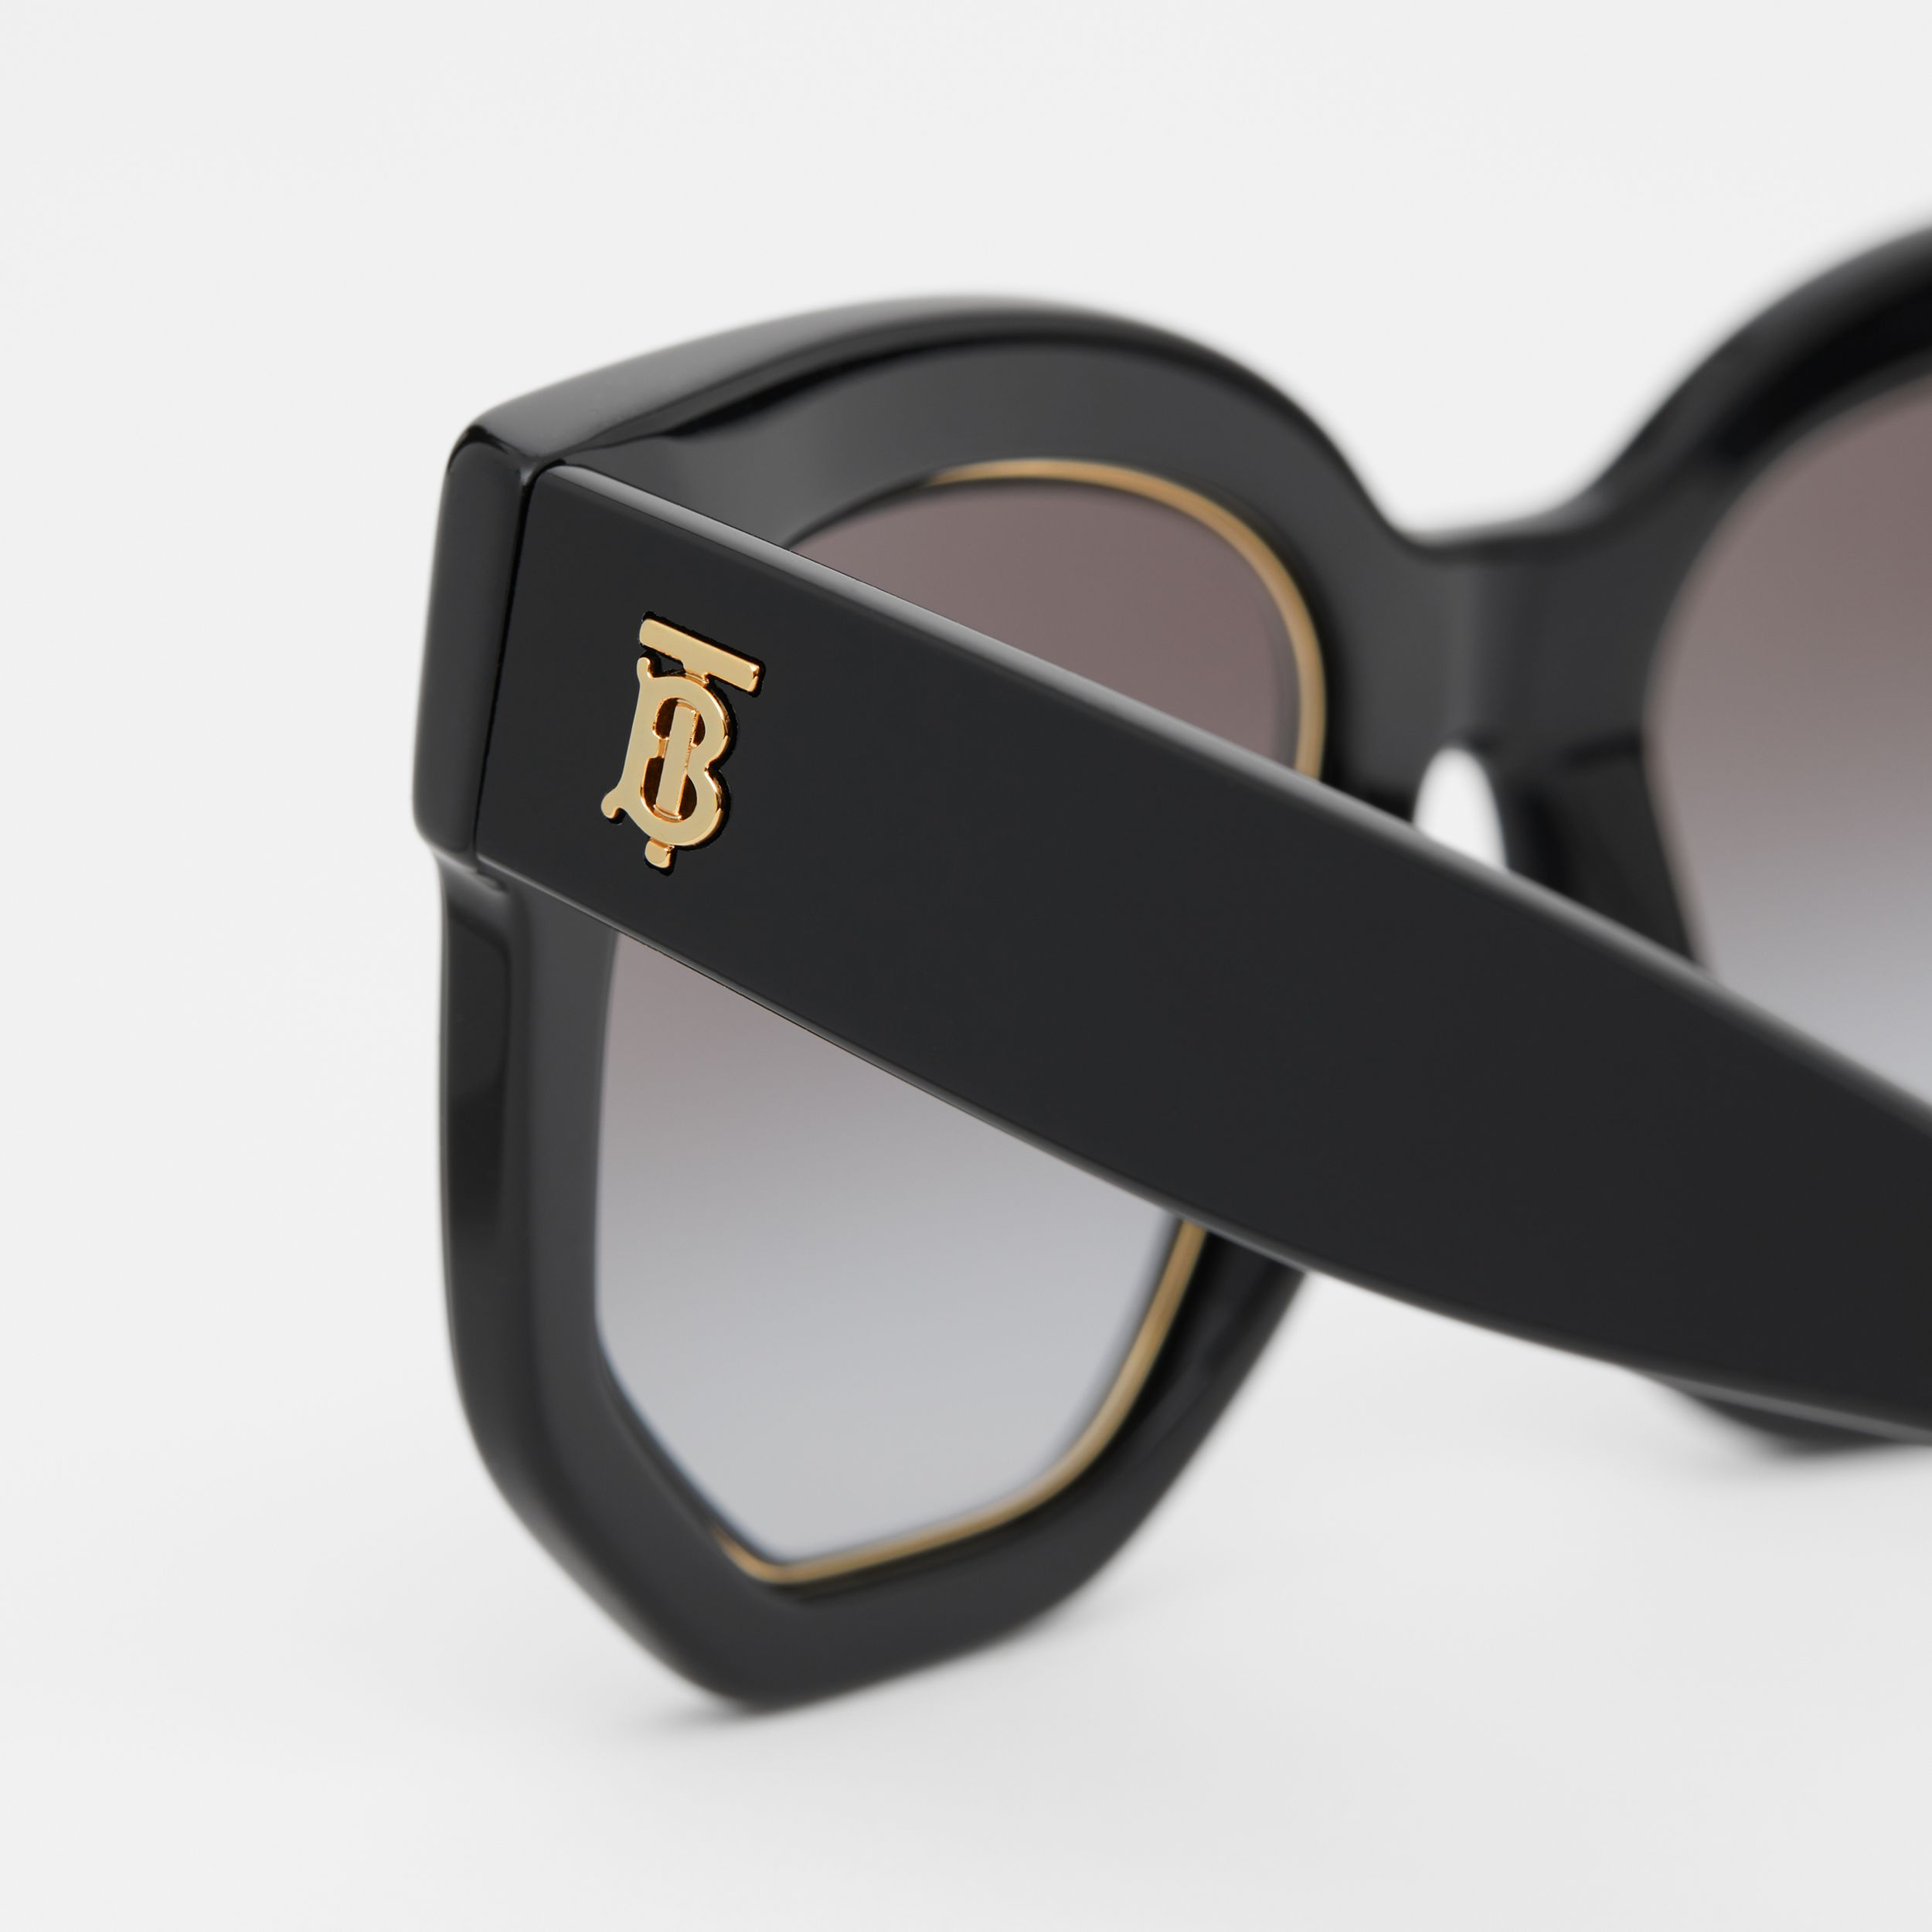 Geometric Frame Sunglasses in Black | Burberry - 2